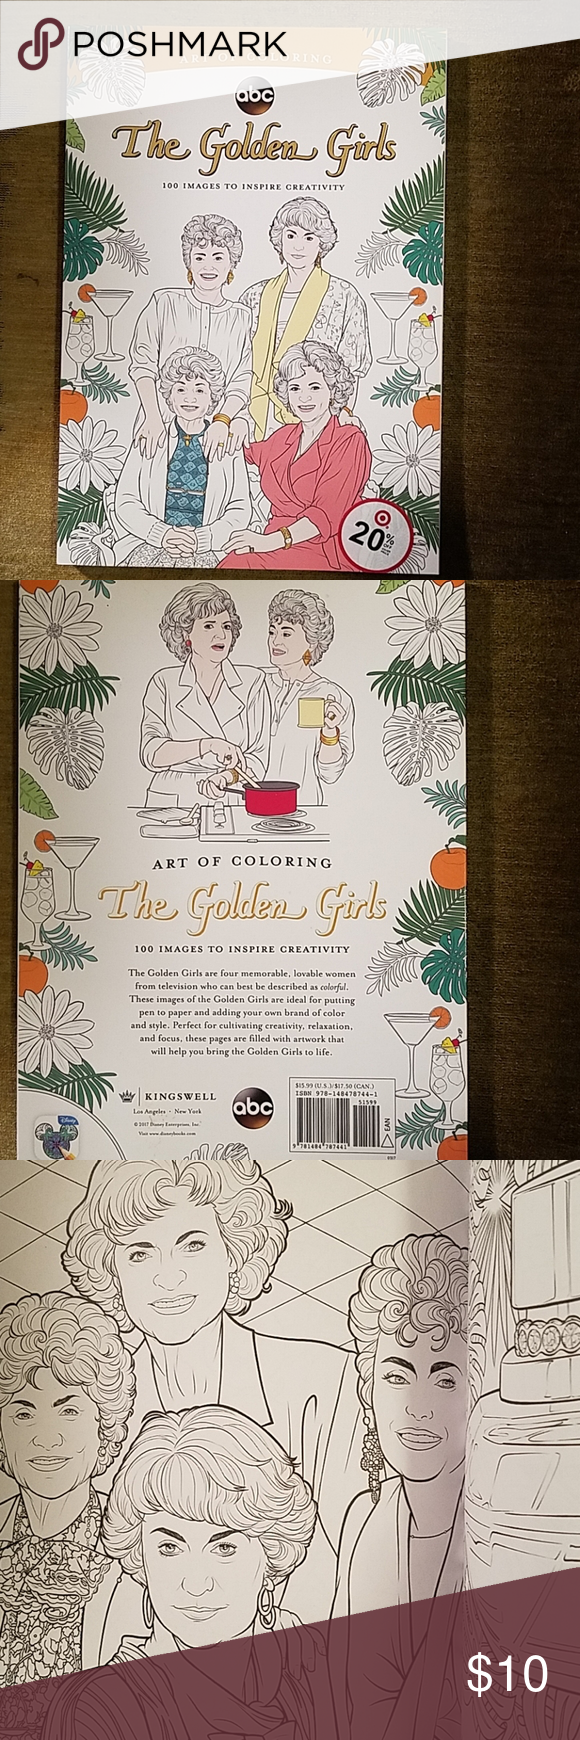 The Golden Girls Coloring Book 100 Images Coloring Books Golden Girls Color